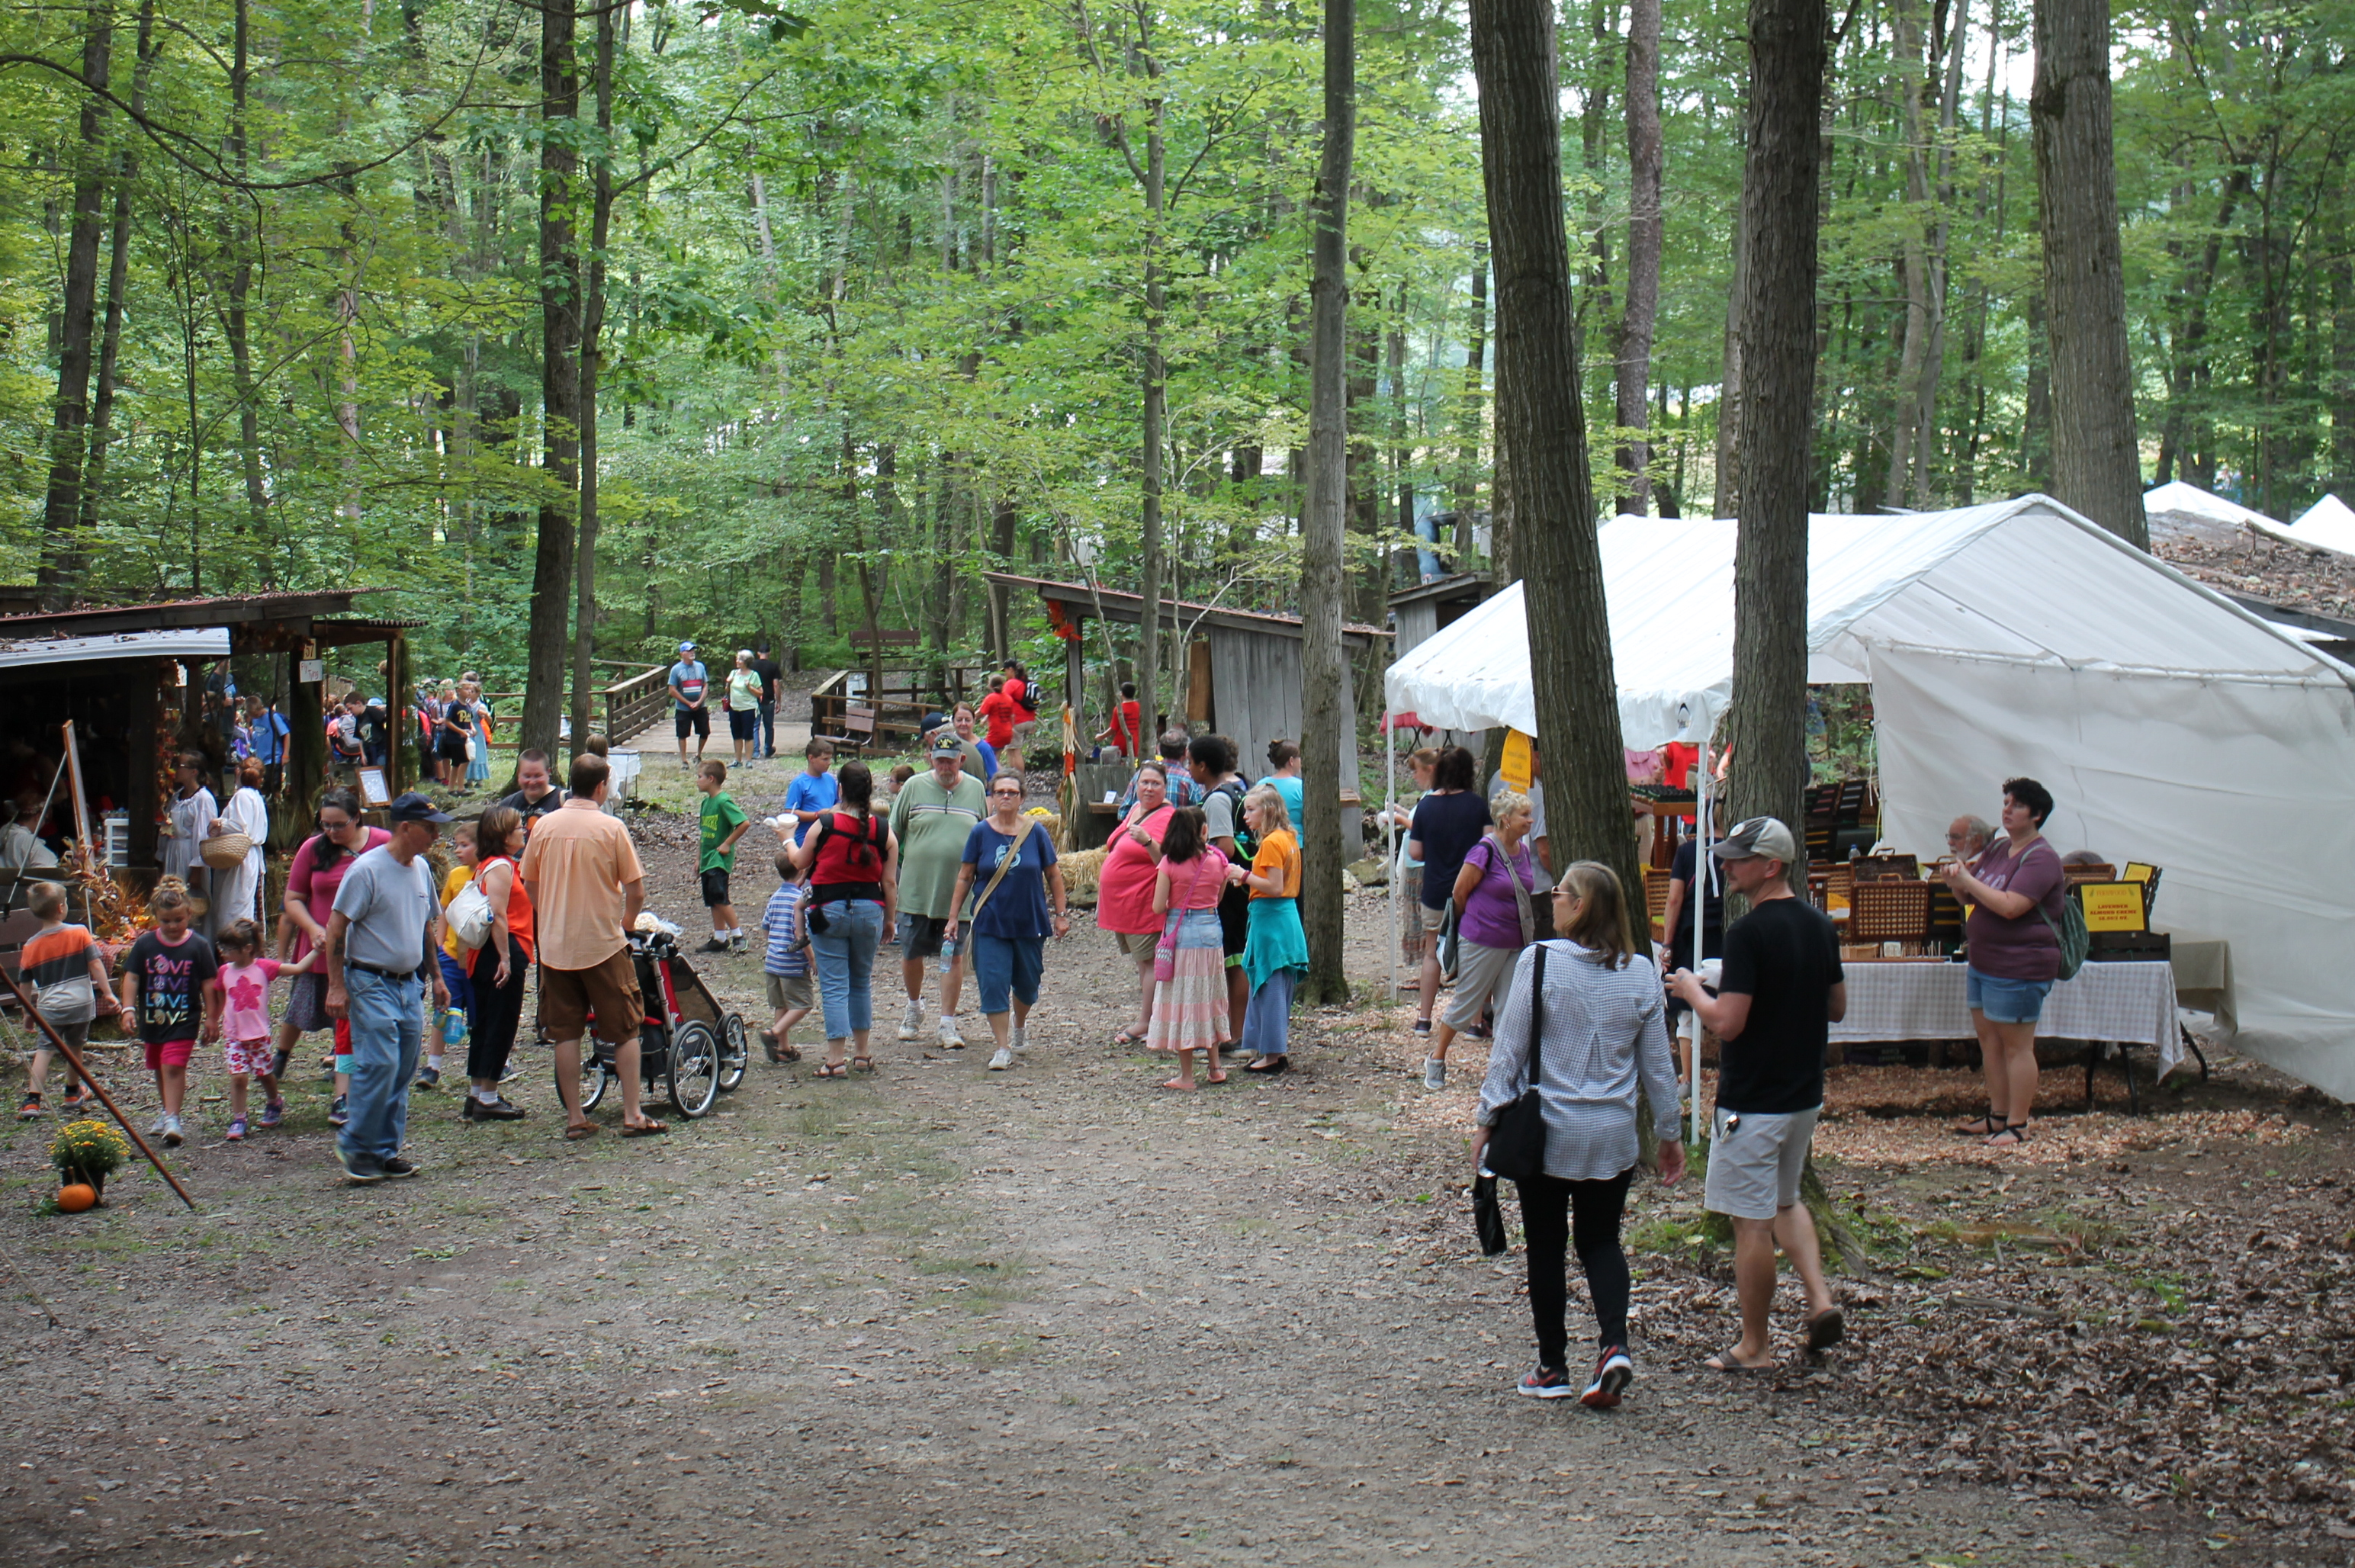 Pictures of a crowd of people walking along a woodland path with tents along the side.